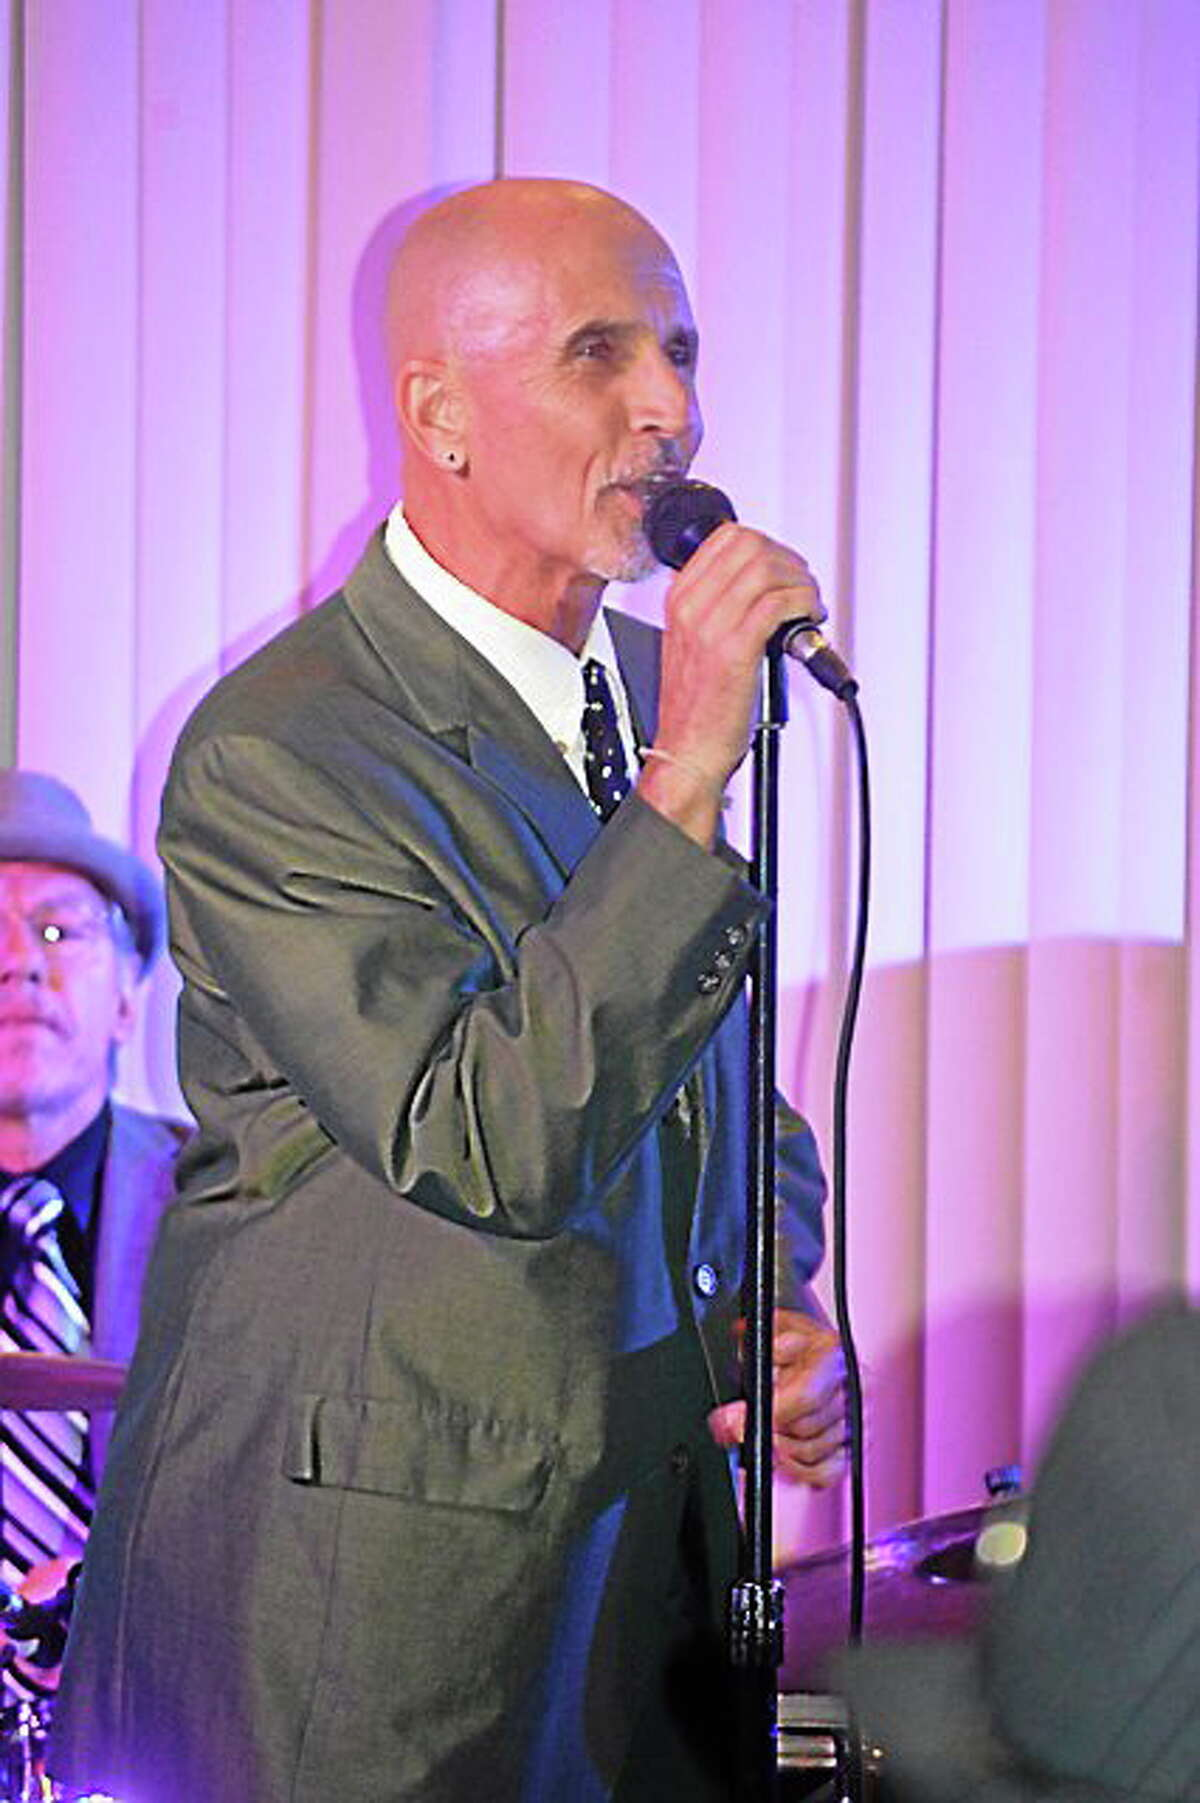 The Mighty Soul Drivers with Bob Orsi are at Hubbard Park in Meriden for a 7 p.m. show followed by fireworks.